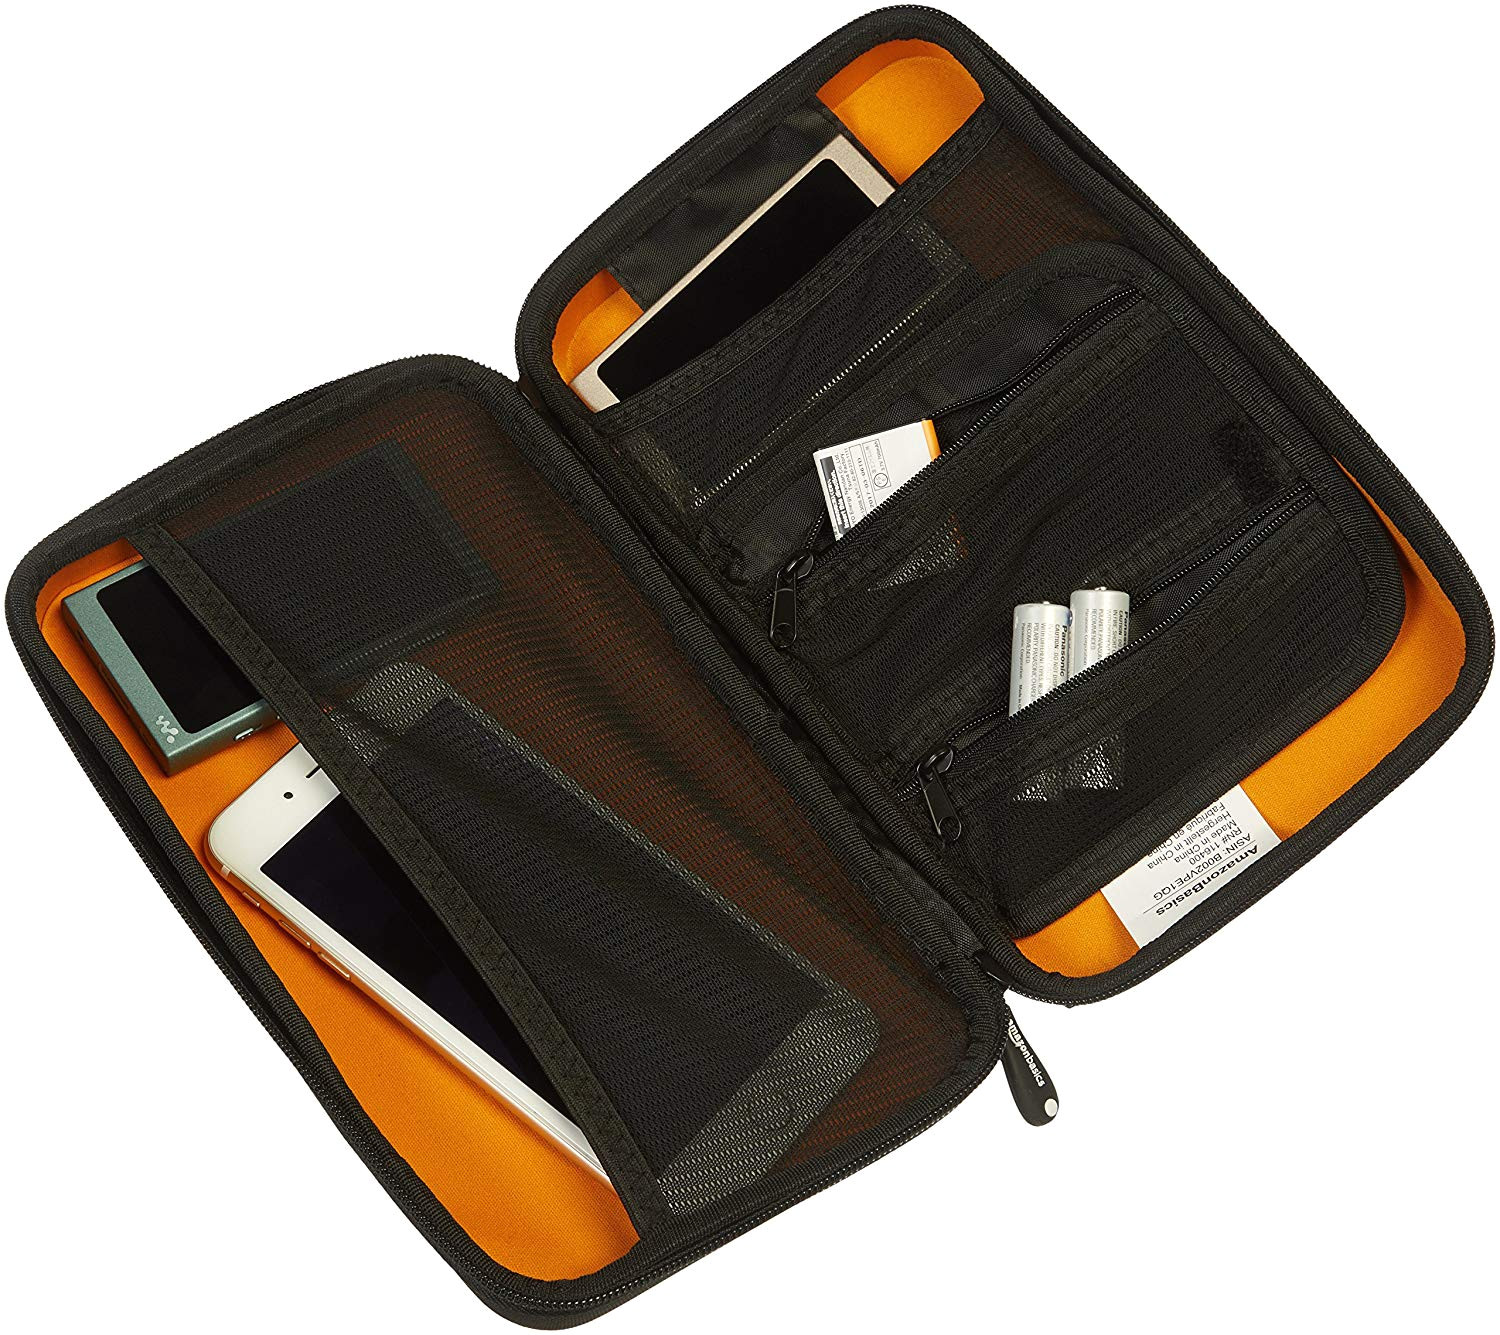 amazonbasics universal travel case for small electronics and accessories black buy amazonbasics universal travel case for small electronics and